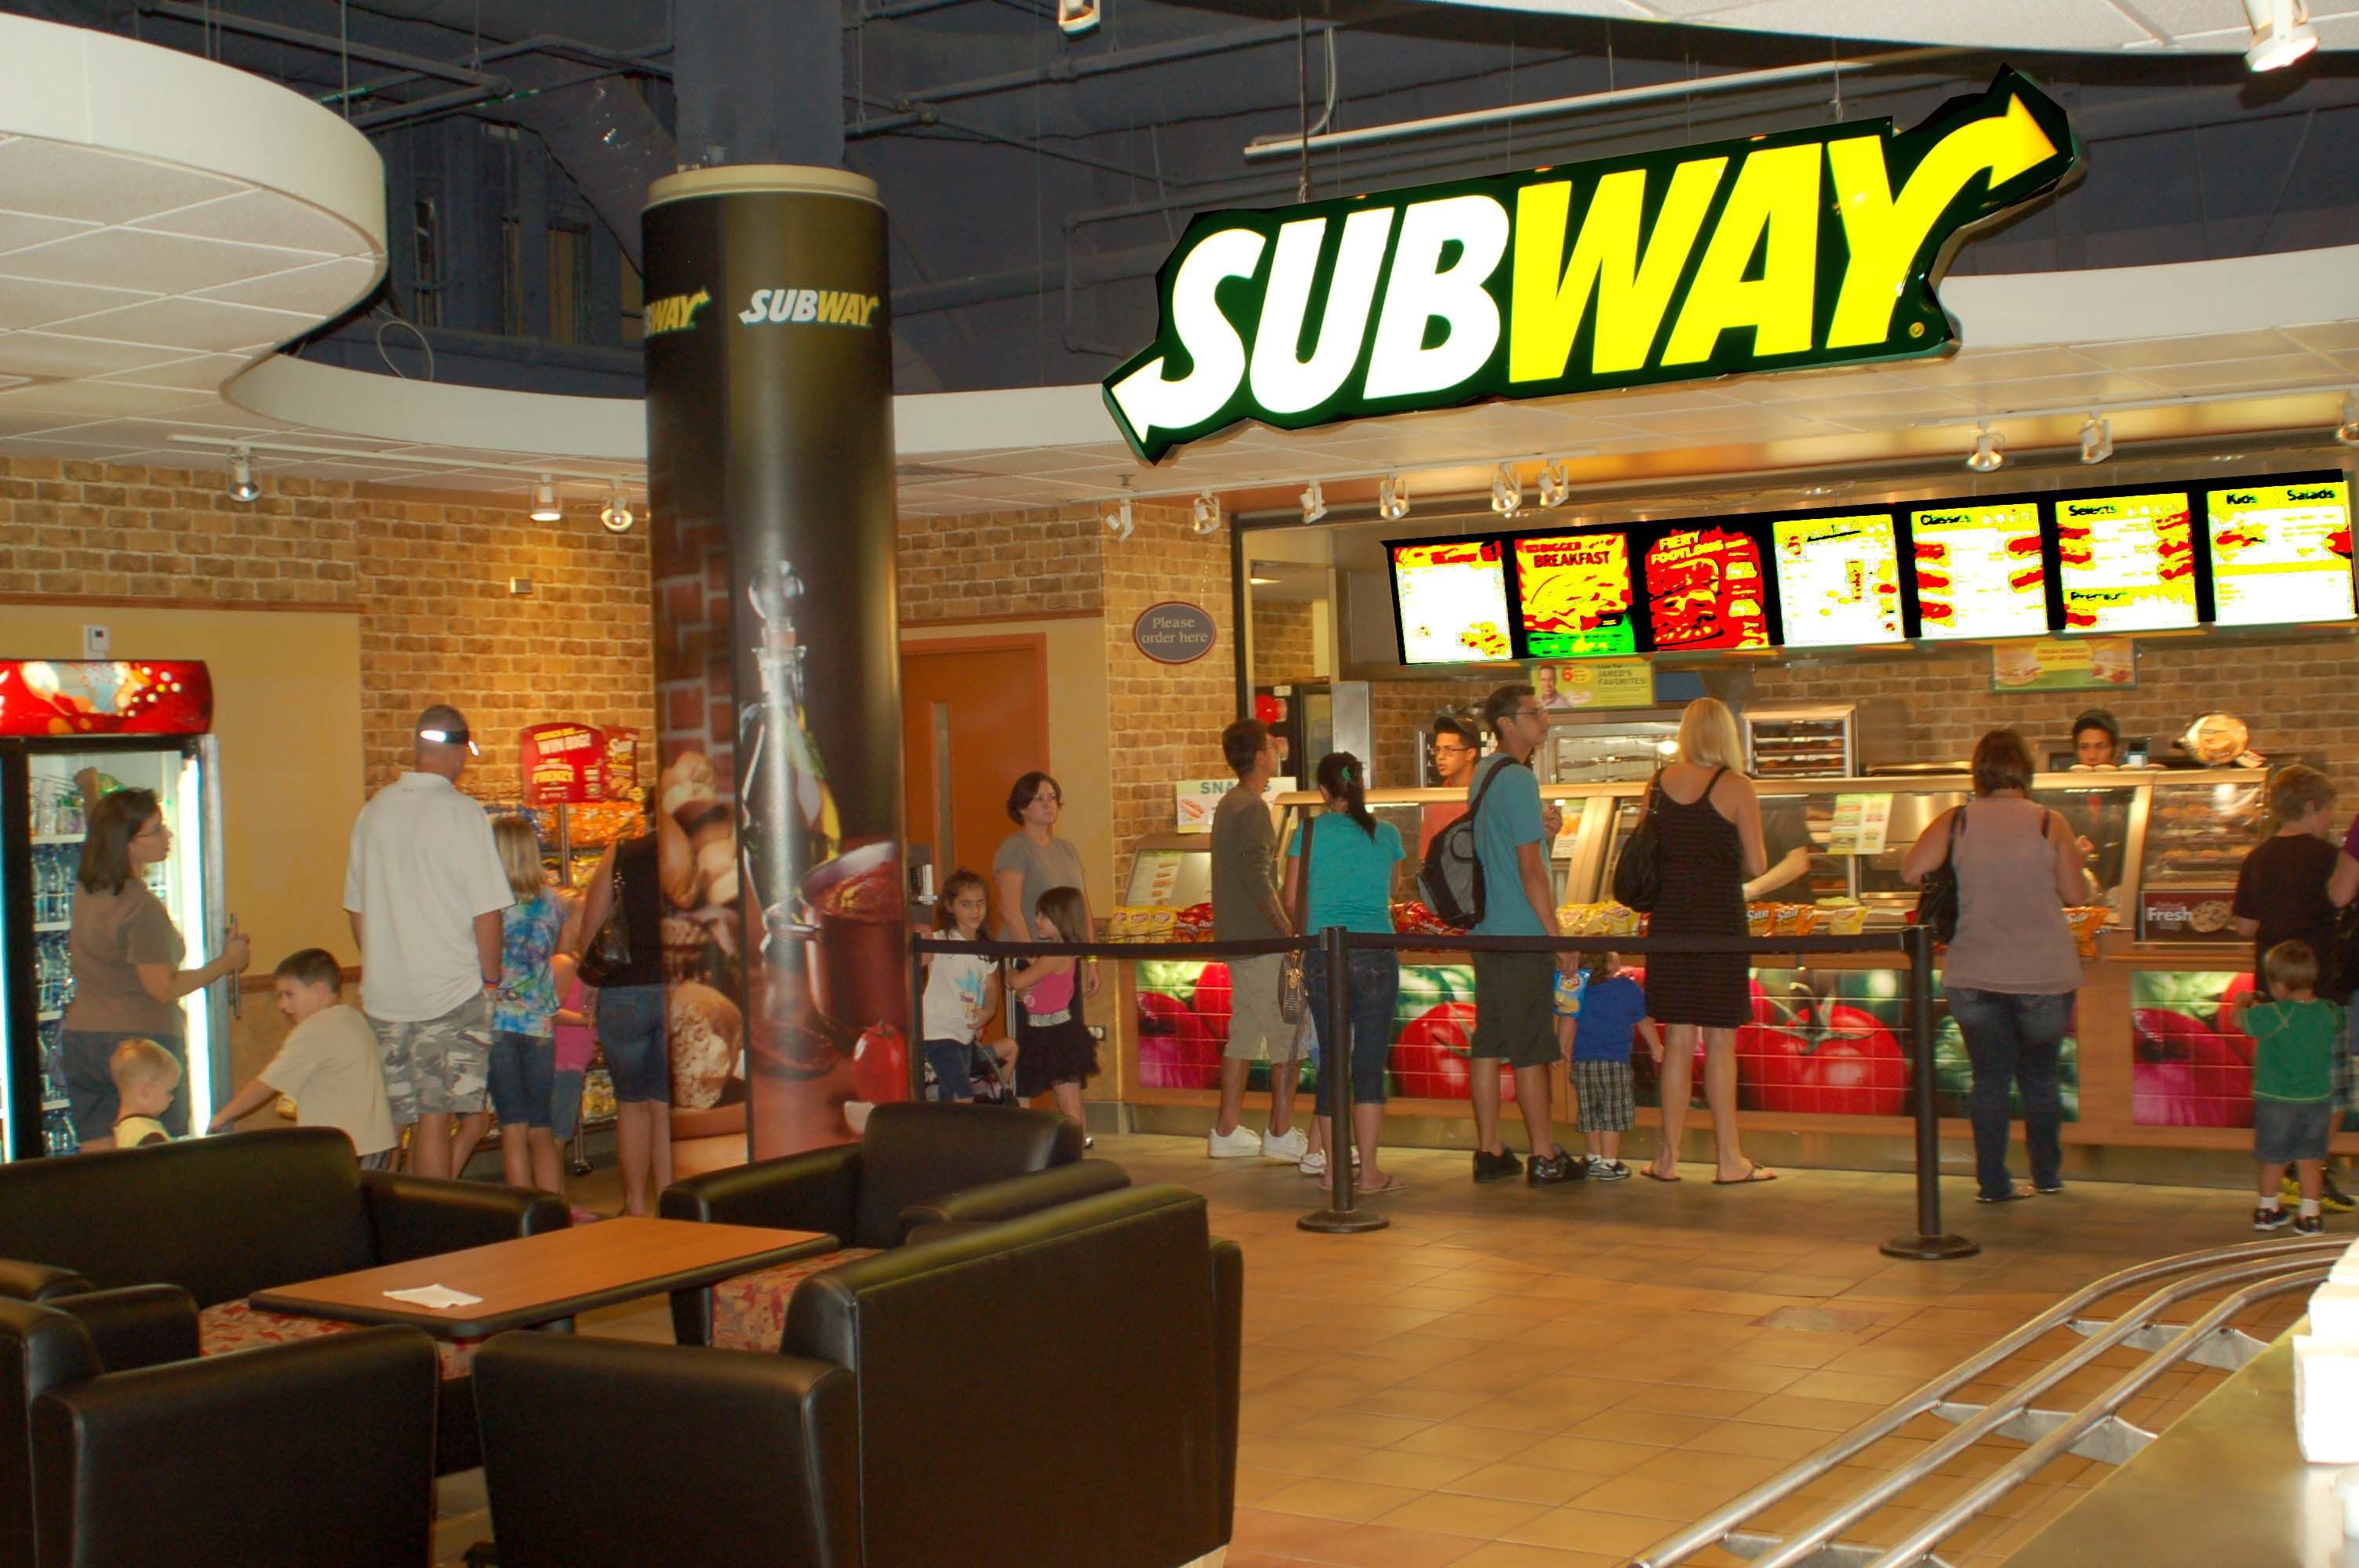 Where There Is an Appetite, There Is a Way <br/>Subway Franchises Thrive in Non-traditional Locations